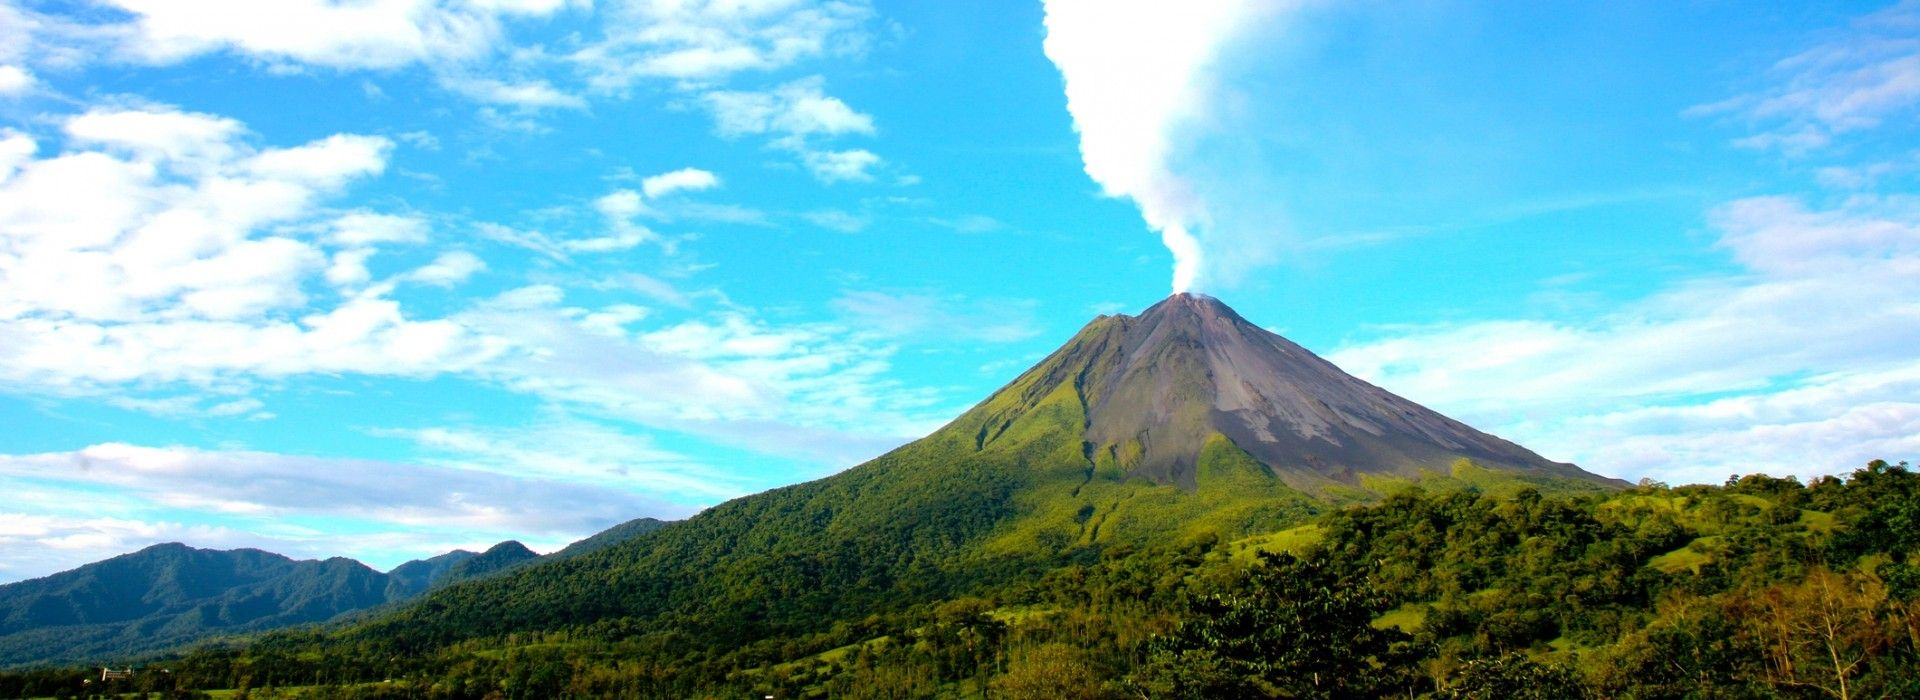 Road trips Tours in Costa Rica